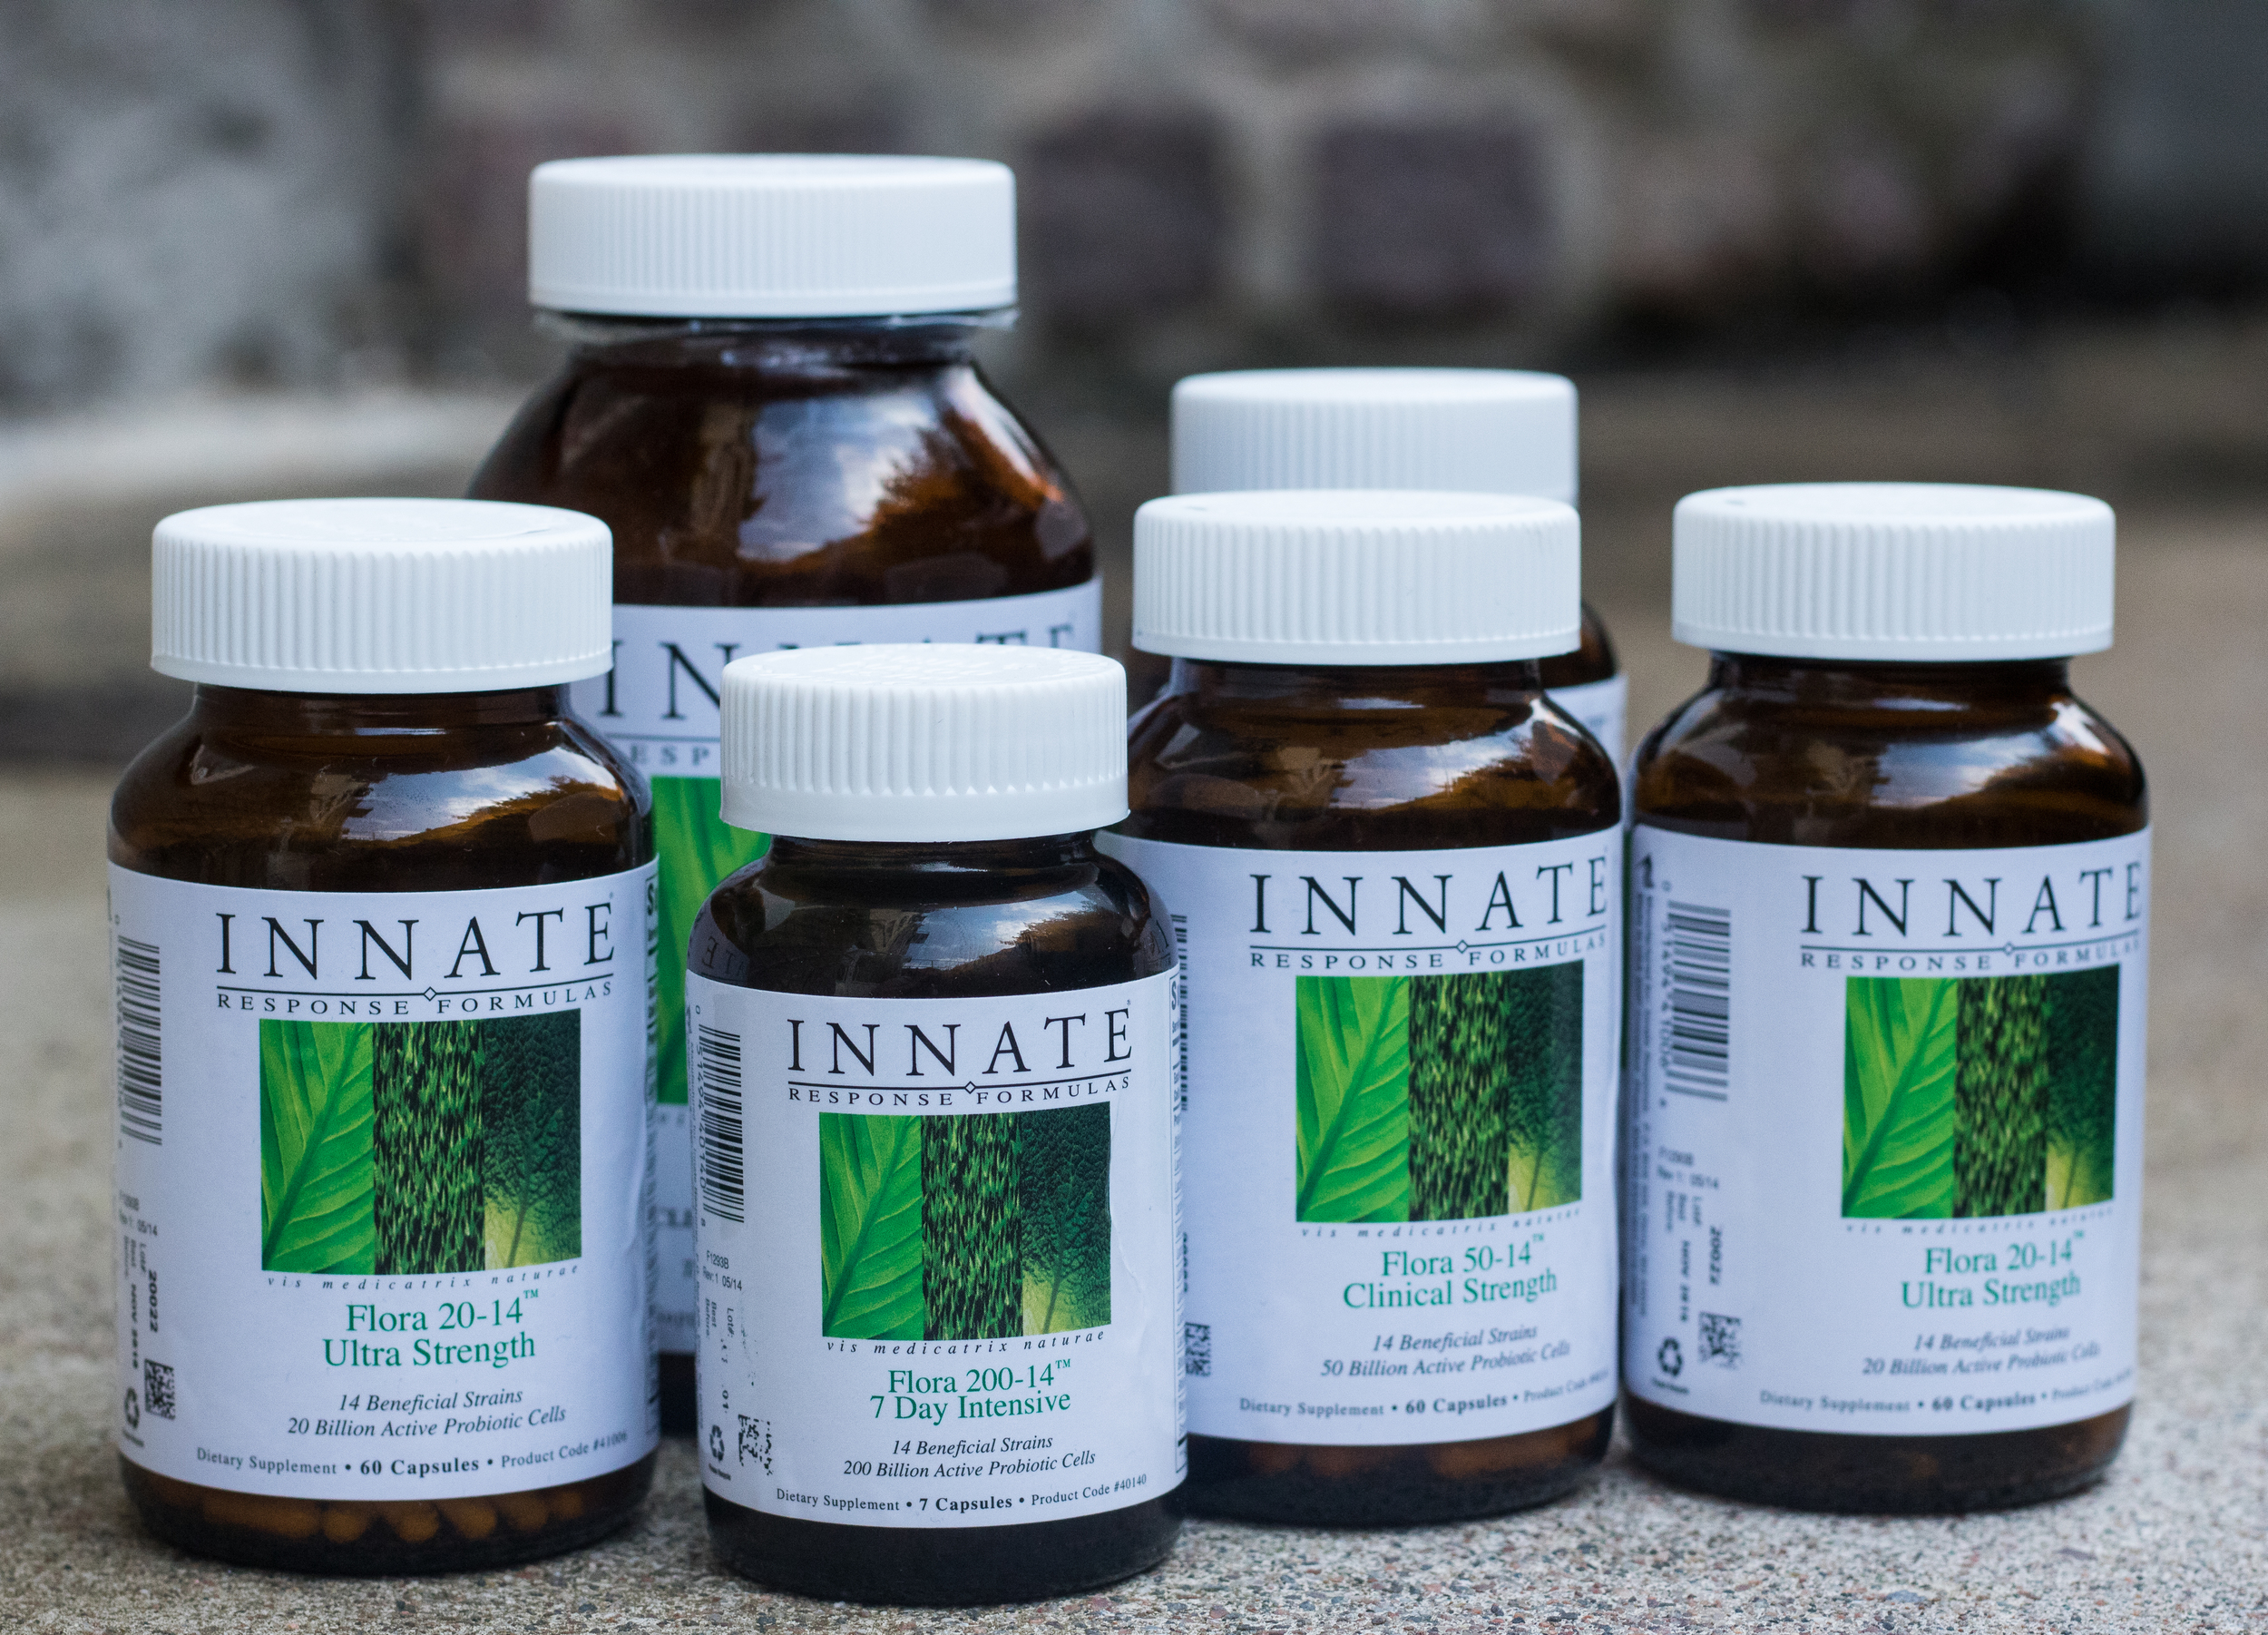 I USE PROBIOTICS FROM INNATE AND I'M VERY PLEASED WITH IT. THEY HAVE A GREAT 7 DAY INTENSIVE, AN EXCELLENT HIGH QUALITY PROBIOTIC FOR PEOPLE WHOSE SYSTEM HAS BEEN COMPROMISED.